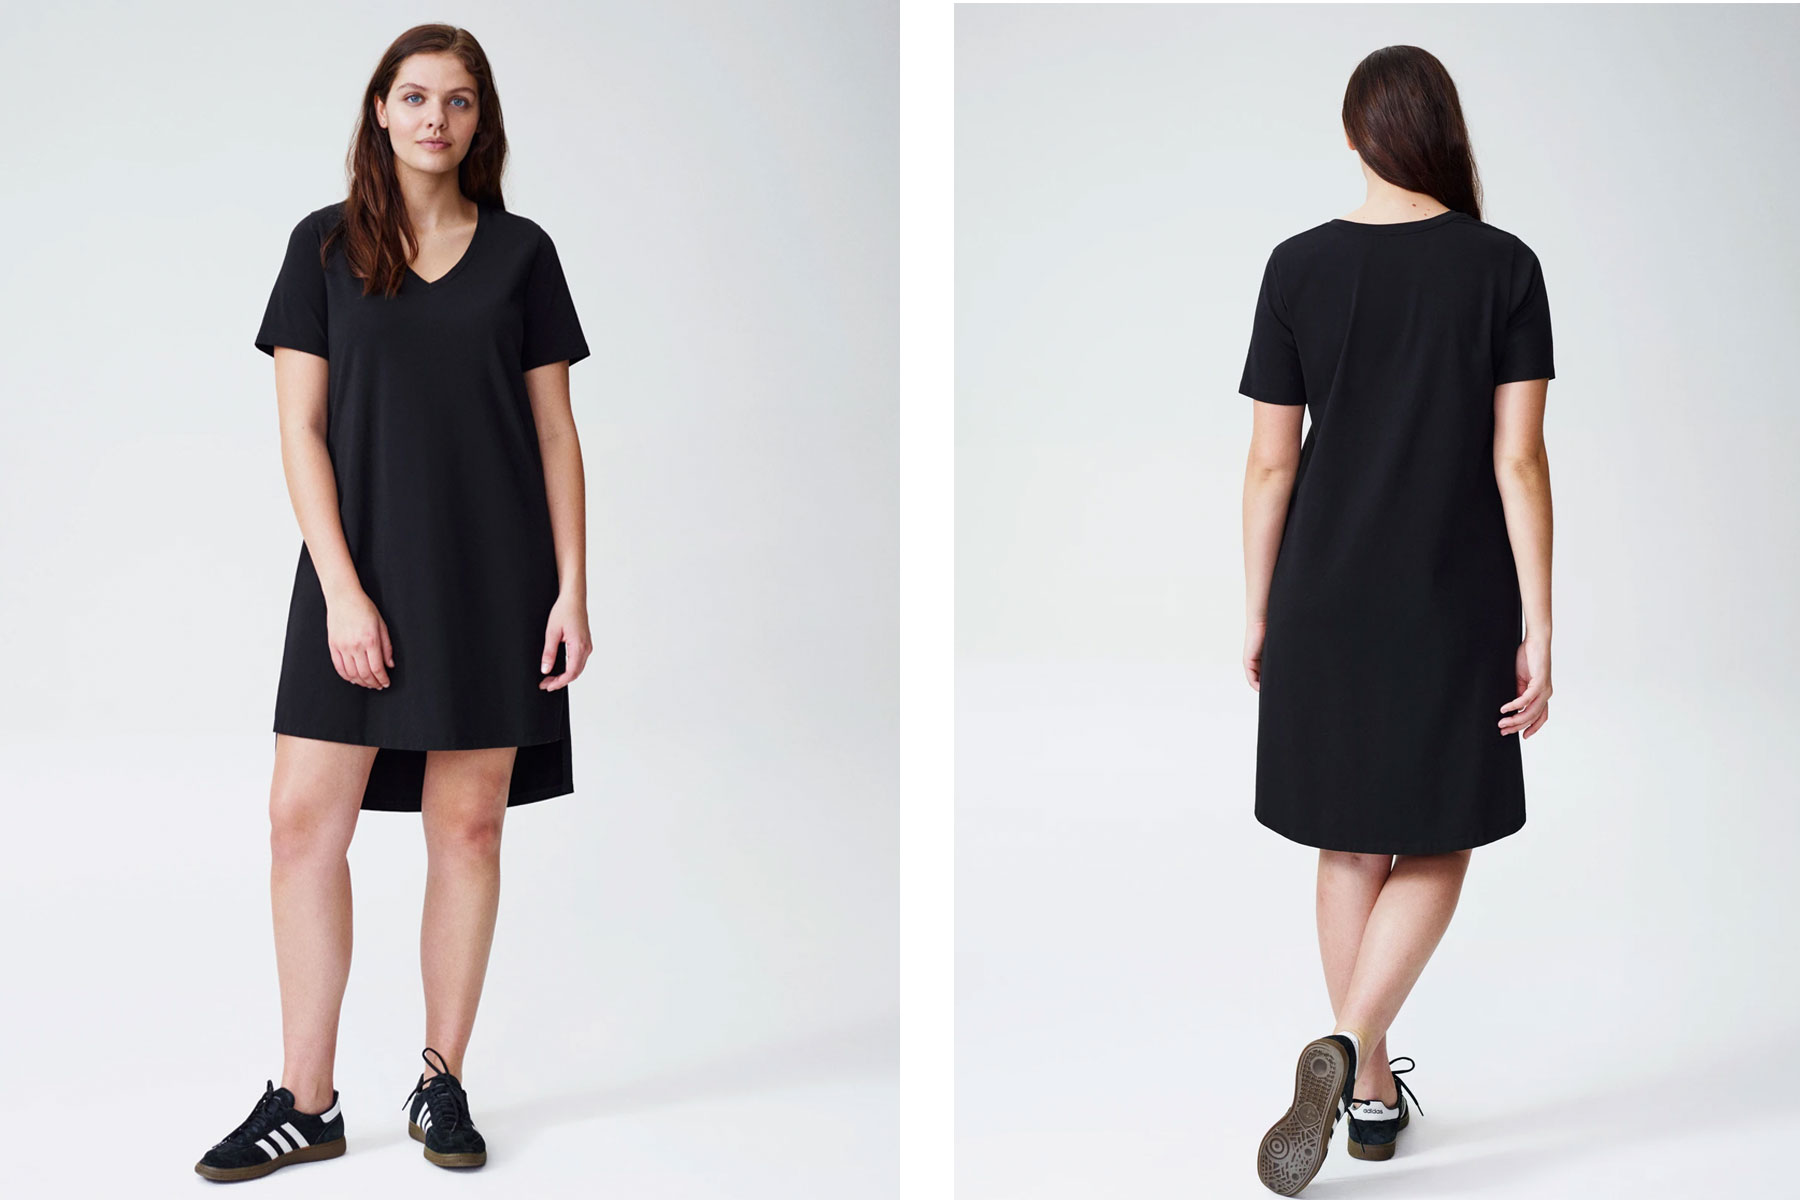 Woman wearing black t-shirt dress